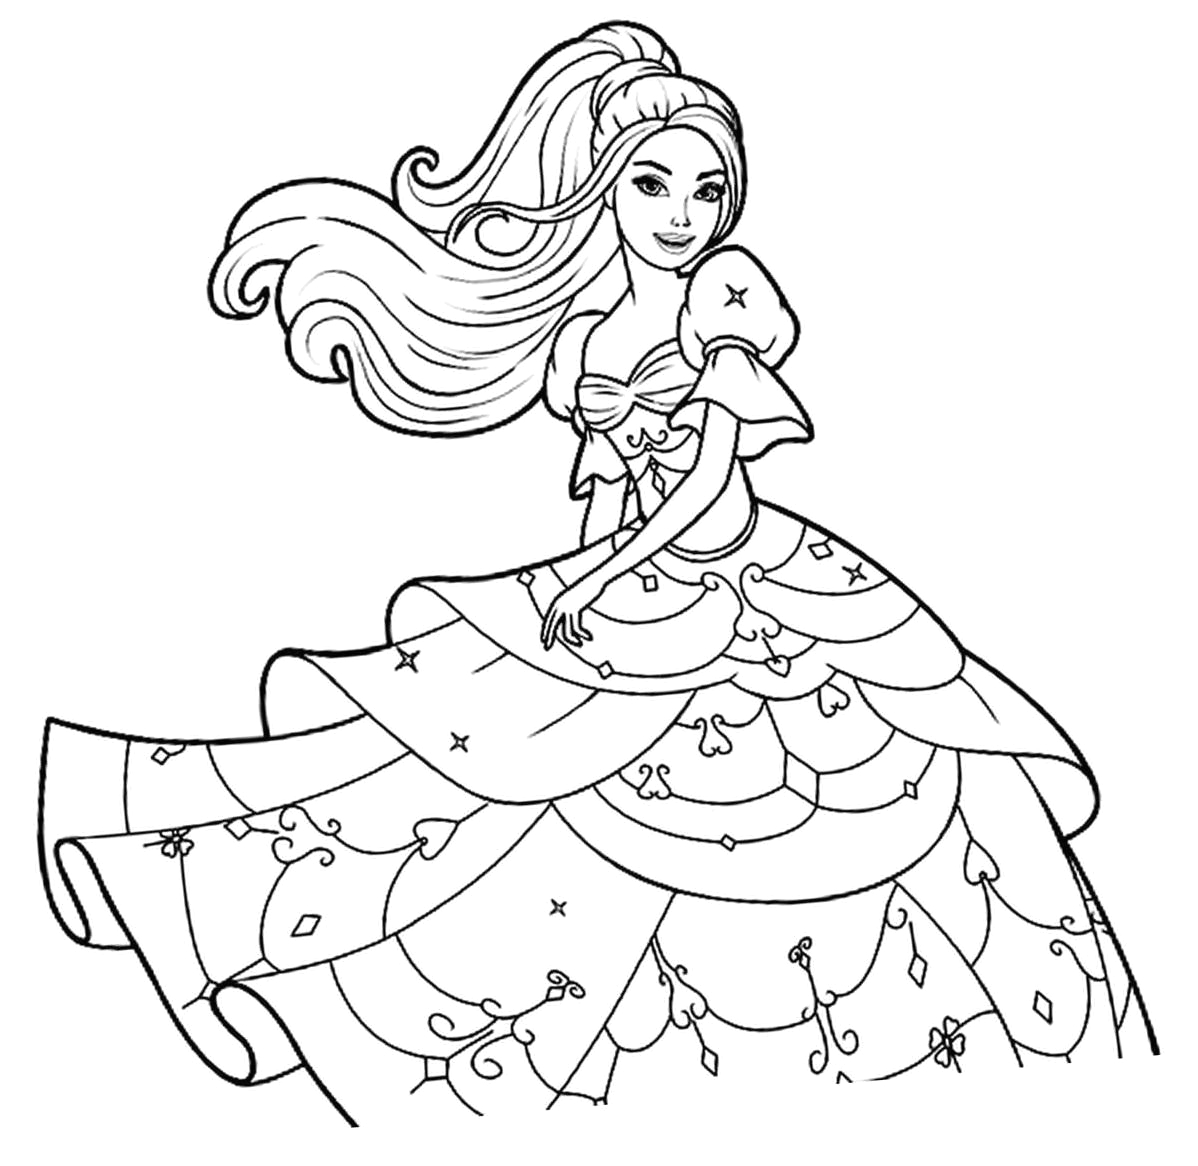 Barbie Princess Coloring Pages to Print Free Beautiful Barbie Princess Coloring Page Free Printable